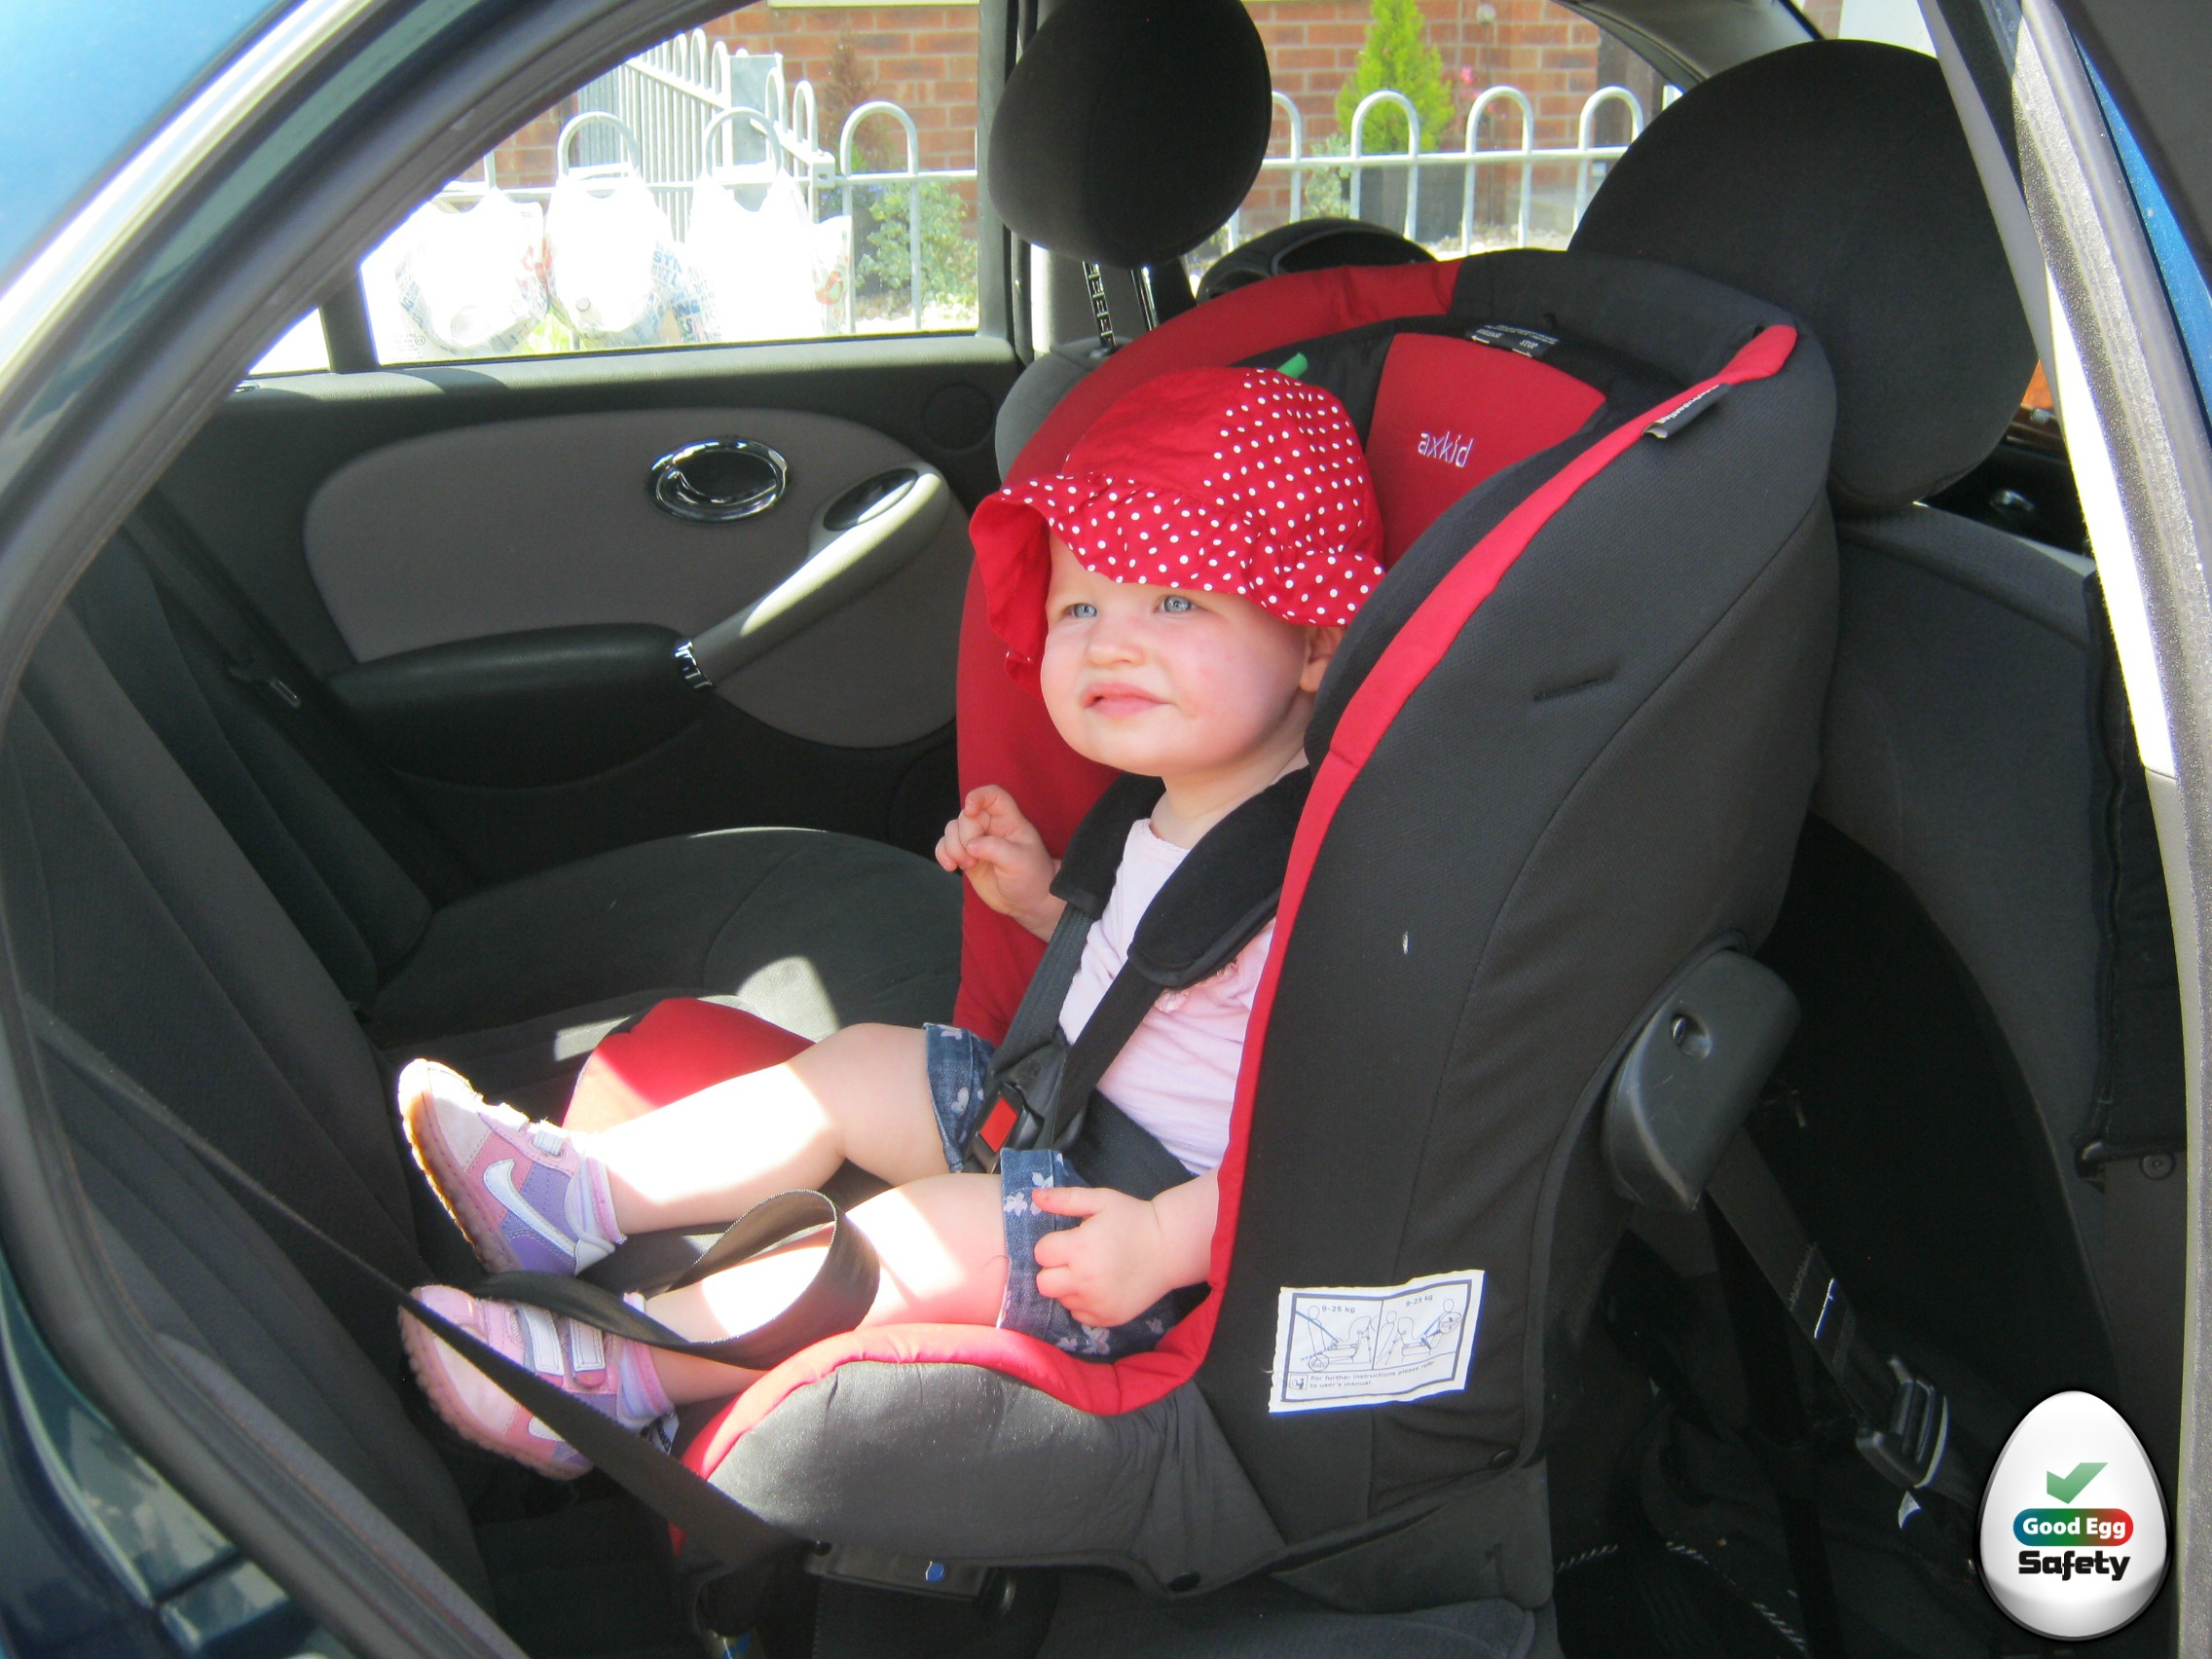 Child Safety Seat Installation Can Be When Should I Turn My Baby Forward Facing Good Egg Car Safety